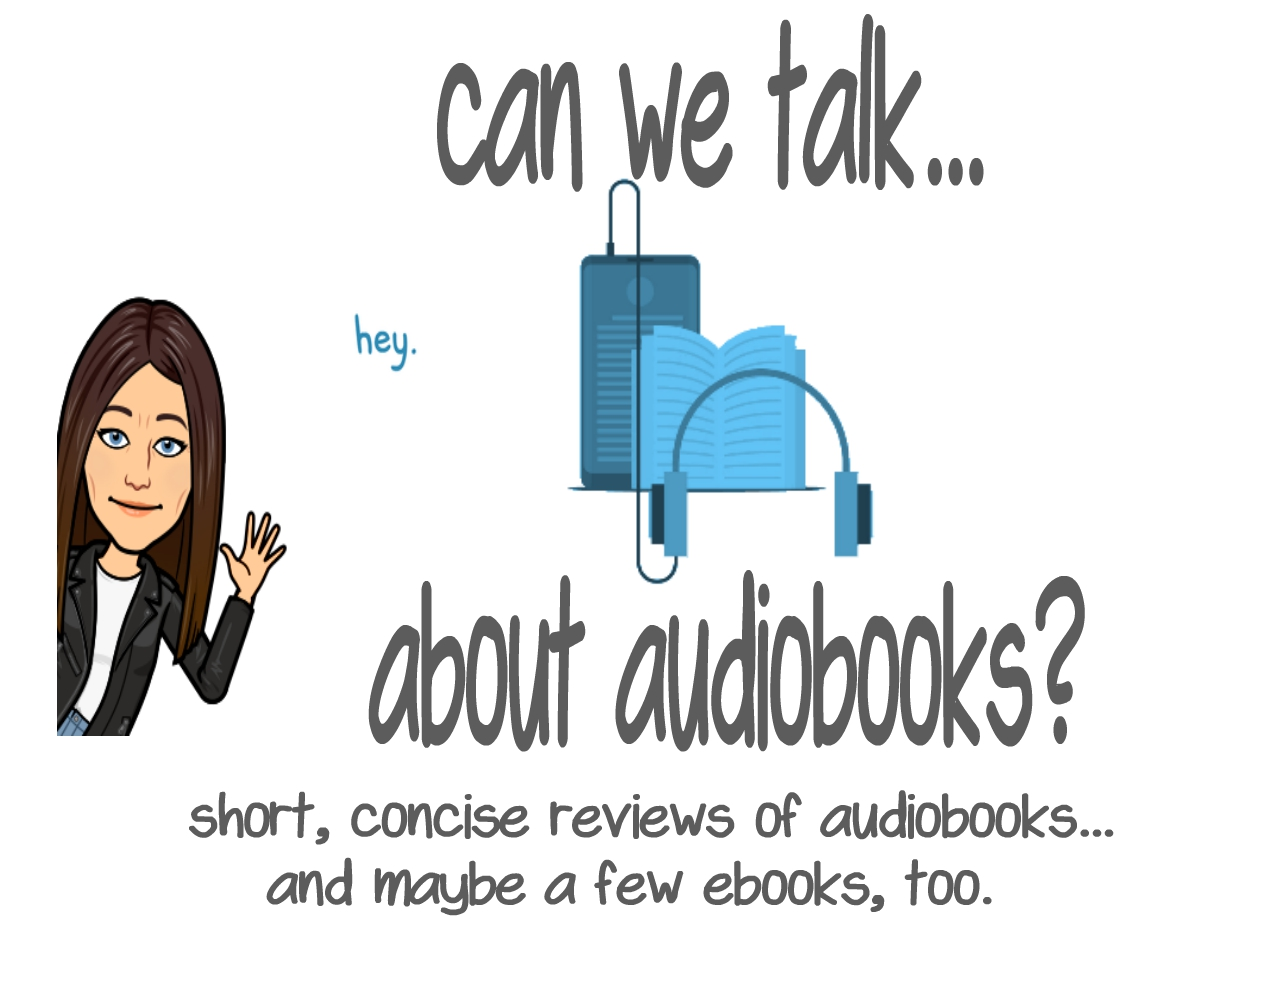 Can we talk...about auidobooks?